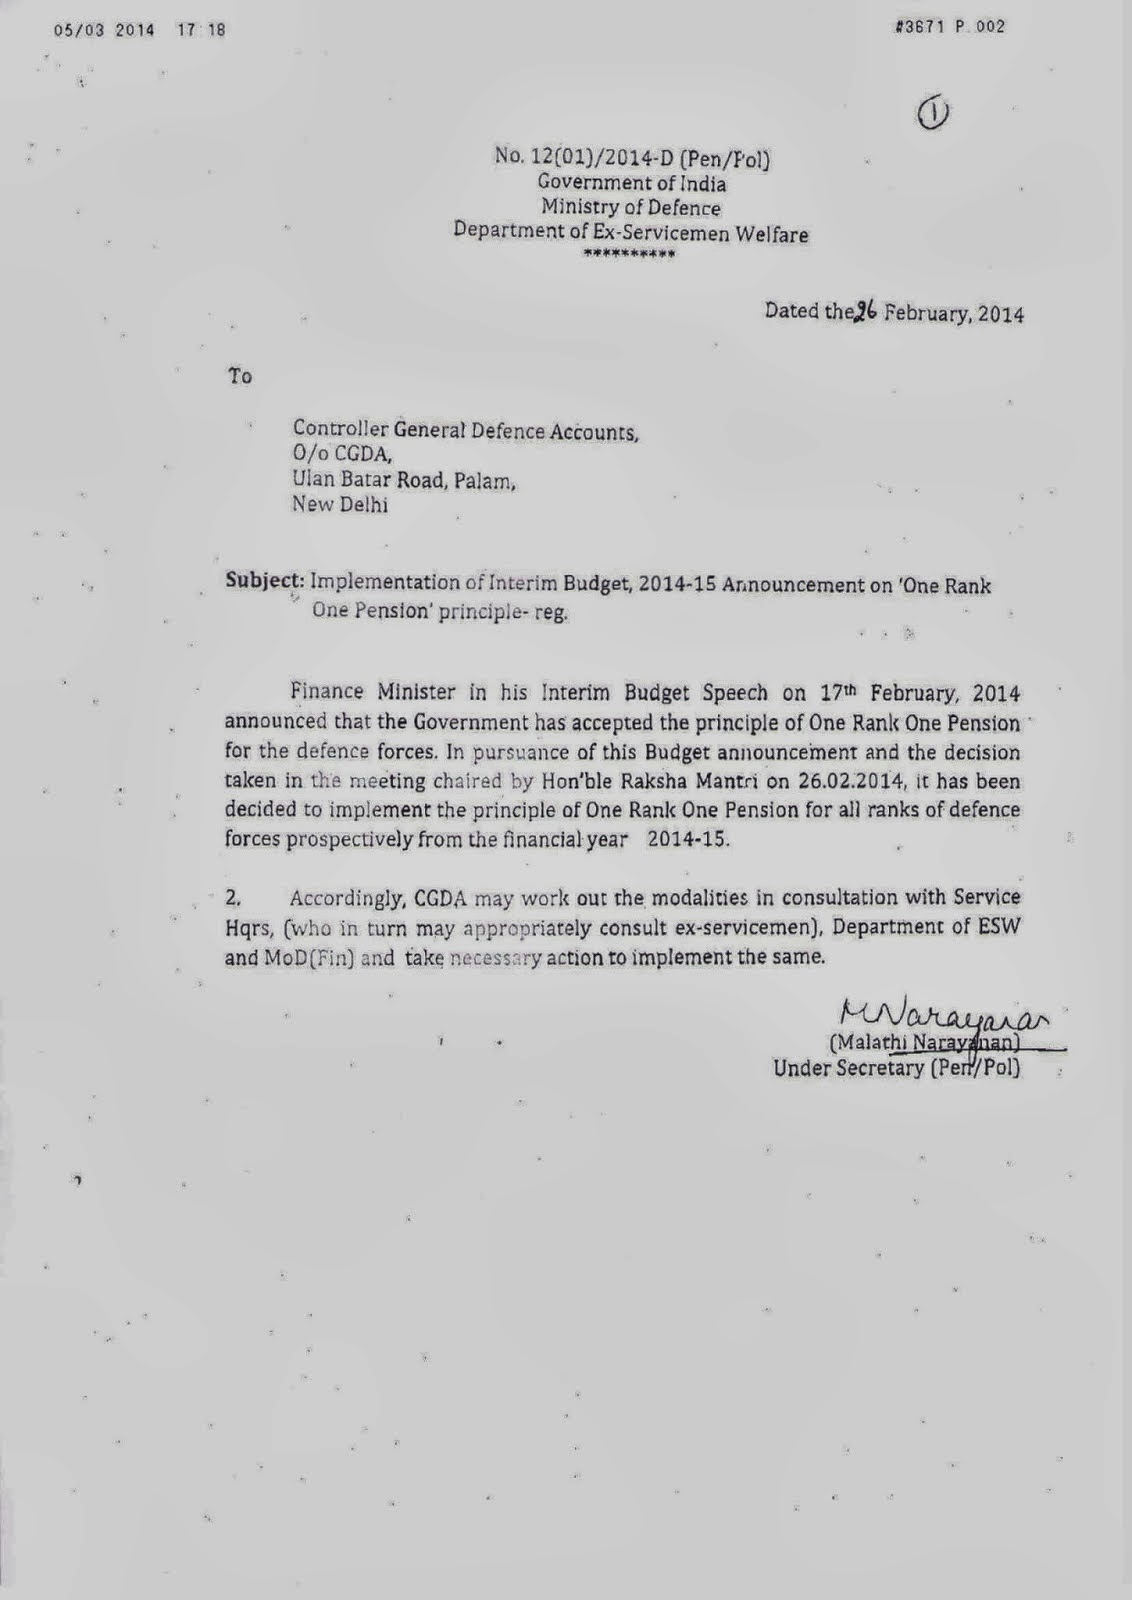 EX-SERVICEMEN WELFARE: OROP ; DEFENCE MINISTER LETTER TO